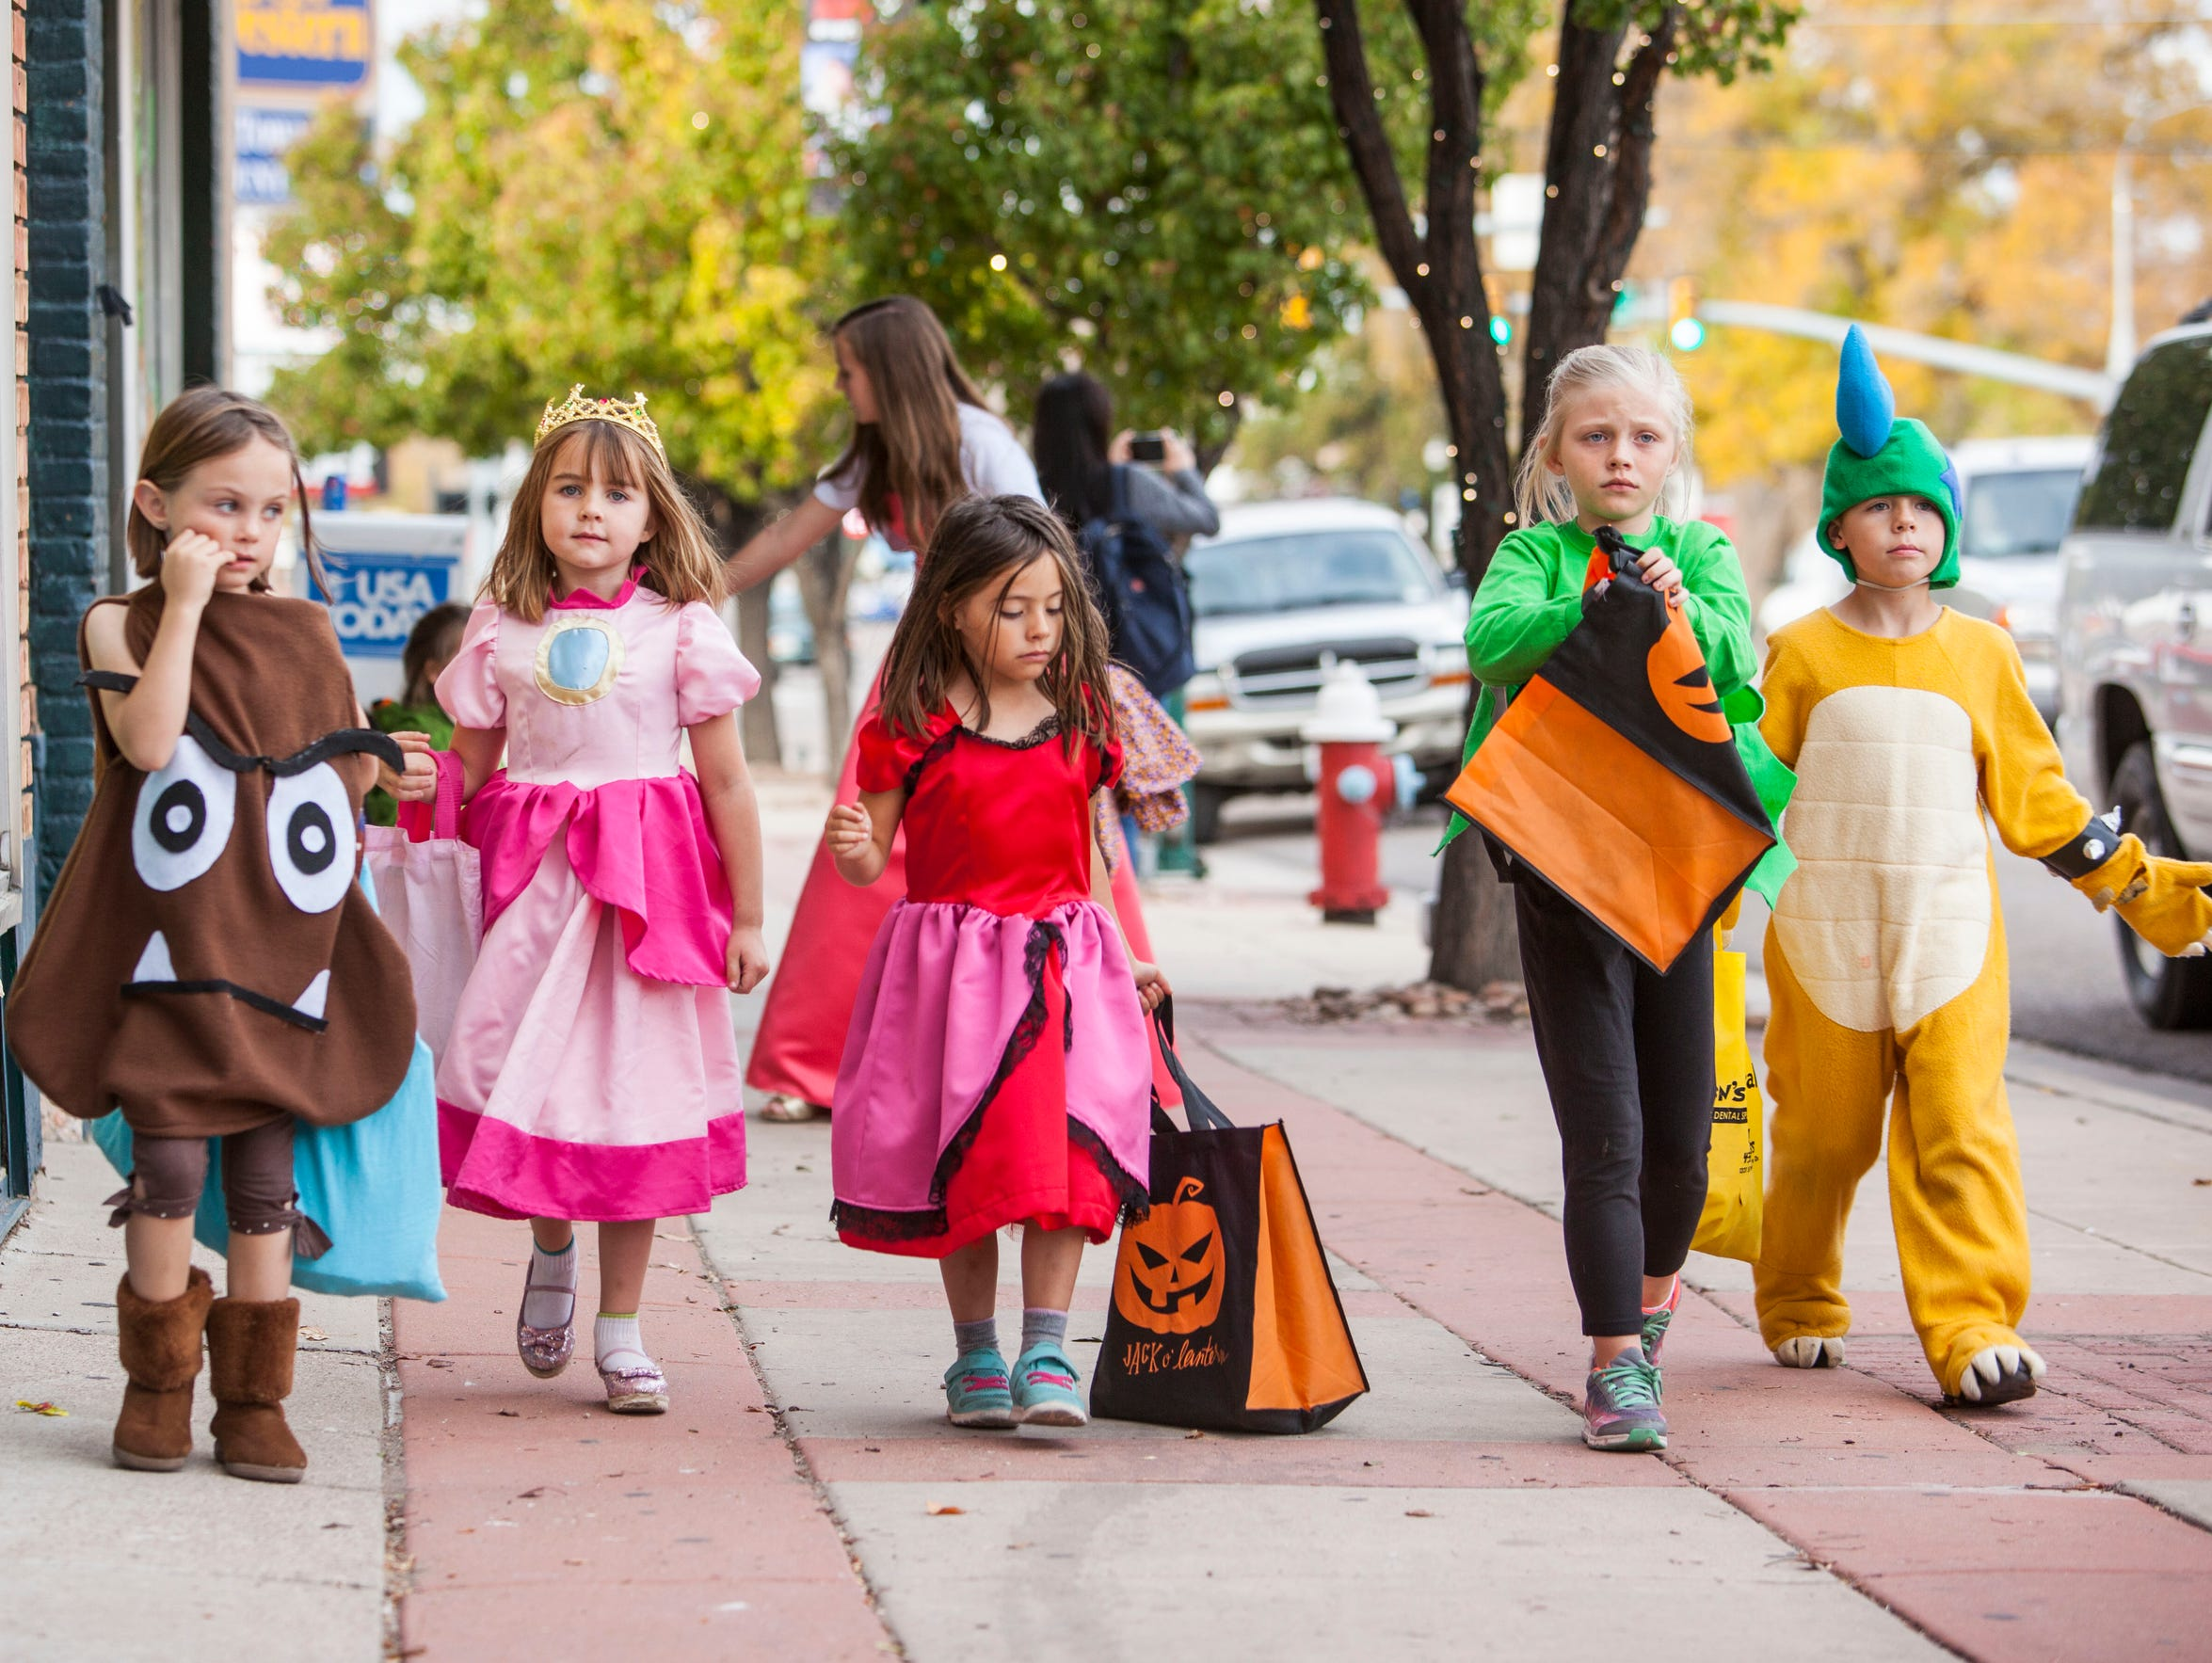 Kids dressed in costumes walk along Main Street in